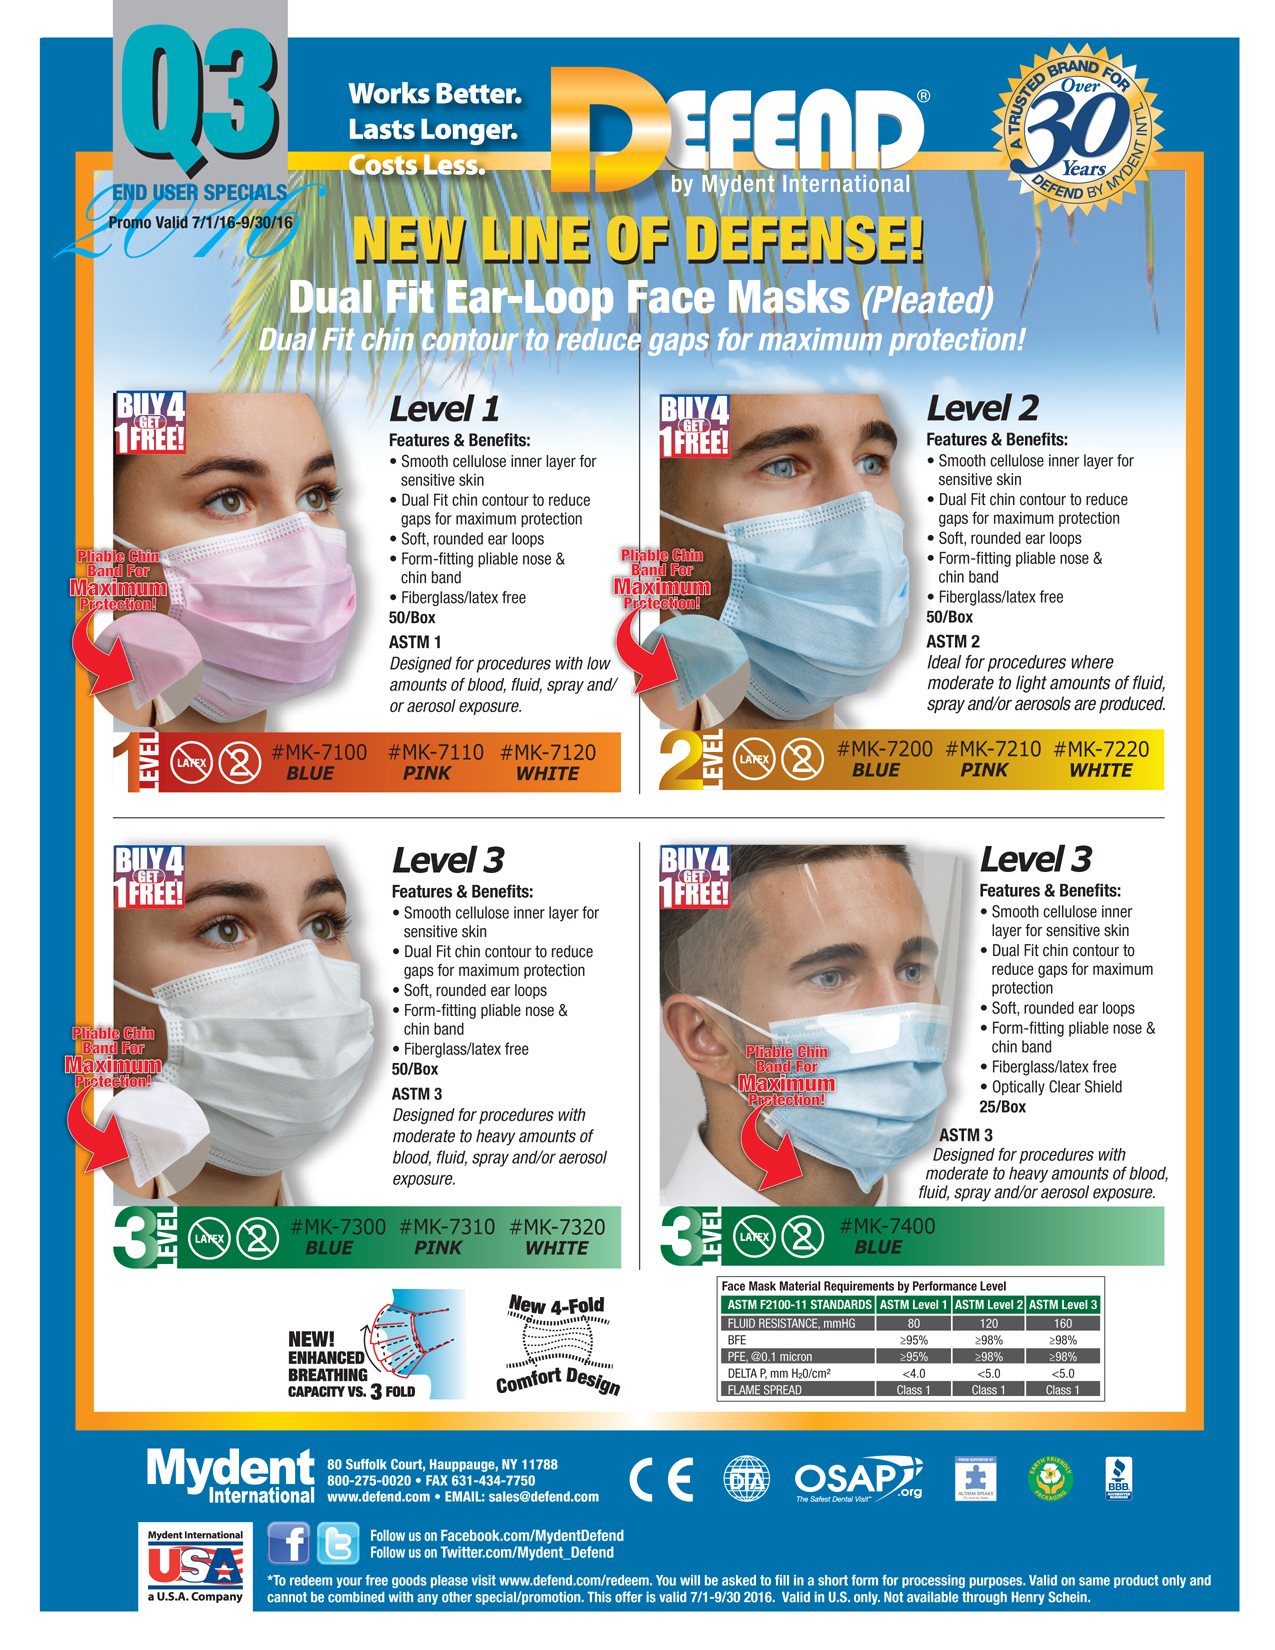 DEFEND 3Q Specials Promotion 2015